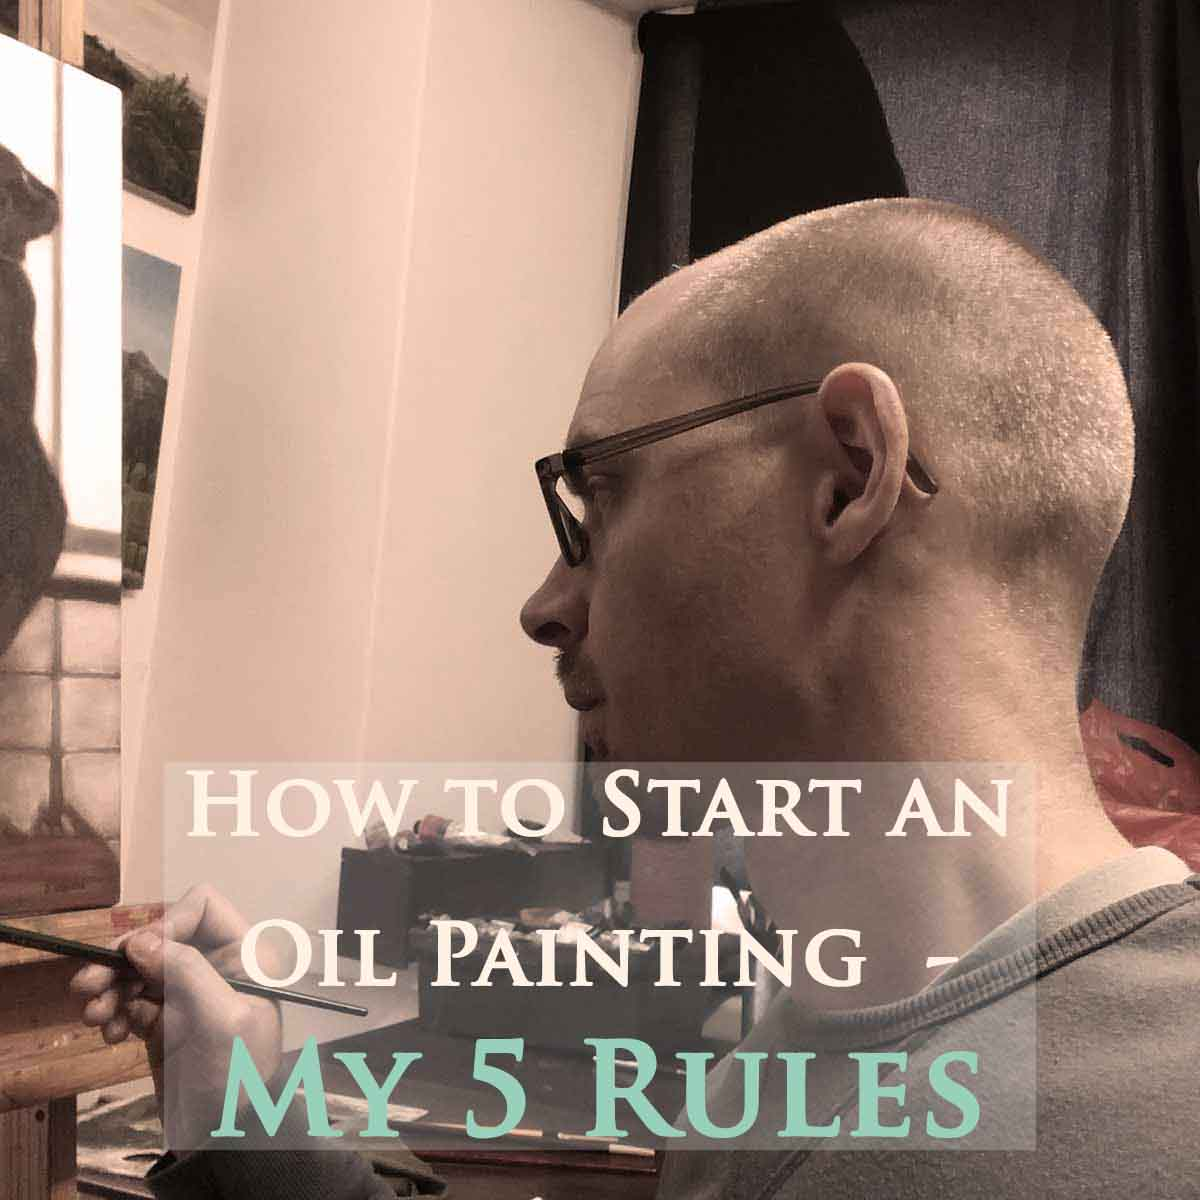 Starting a Painting – My 5 rules